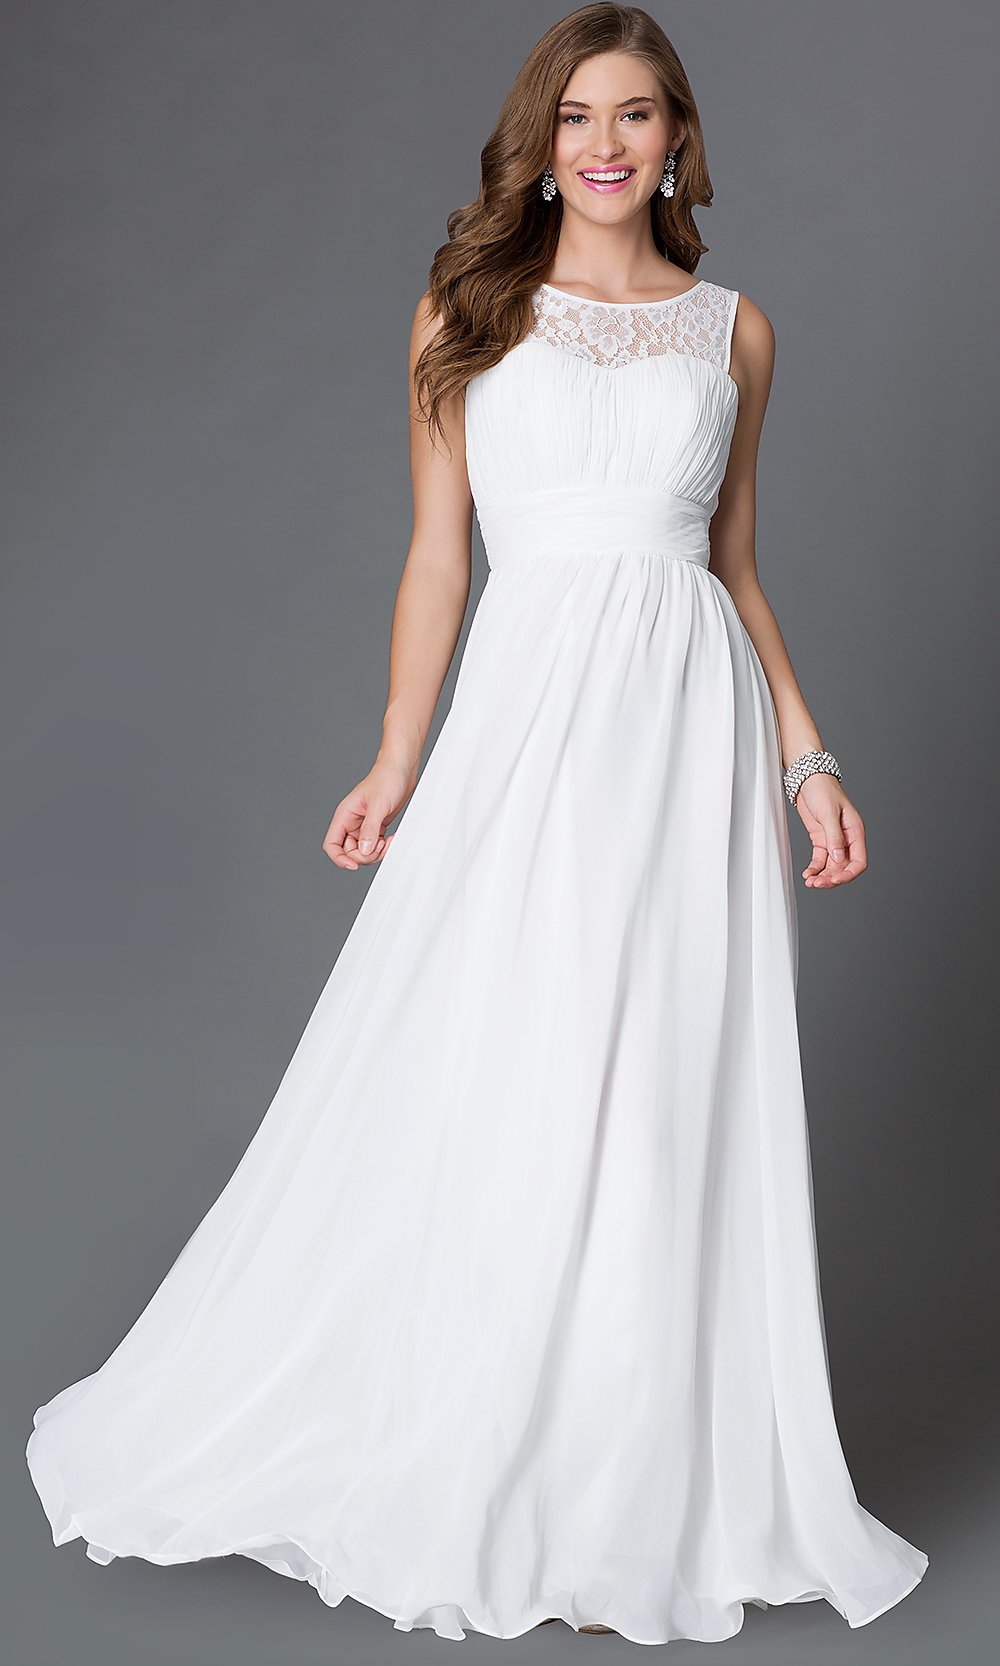 Long Corset Dress with Ruched Bodice - PromGirl